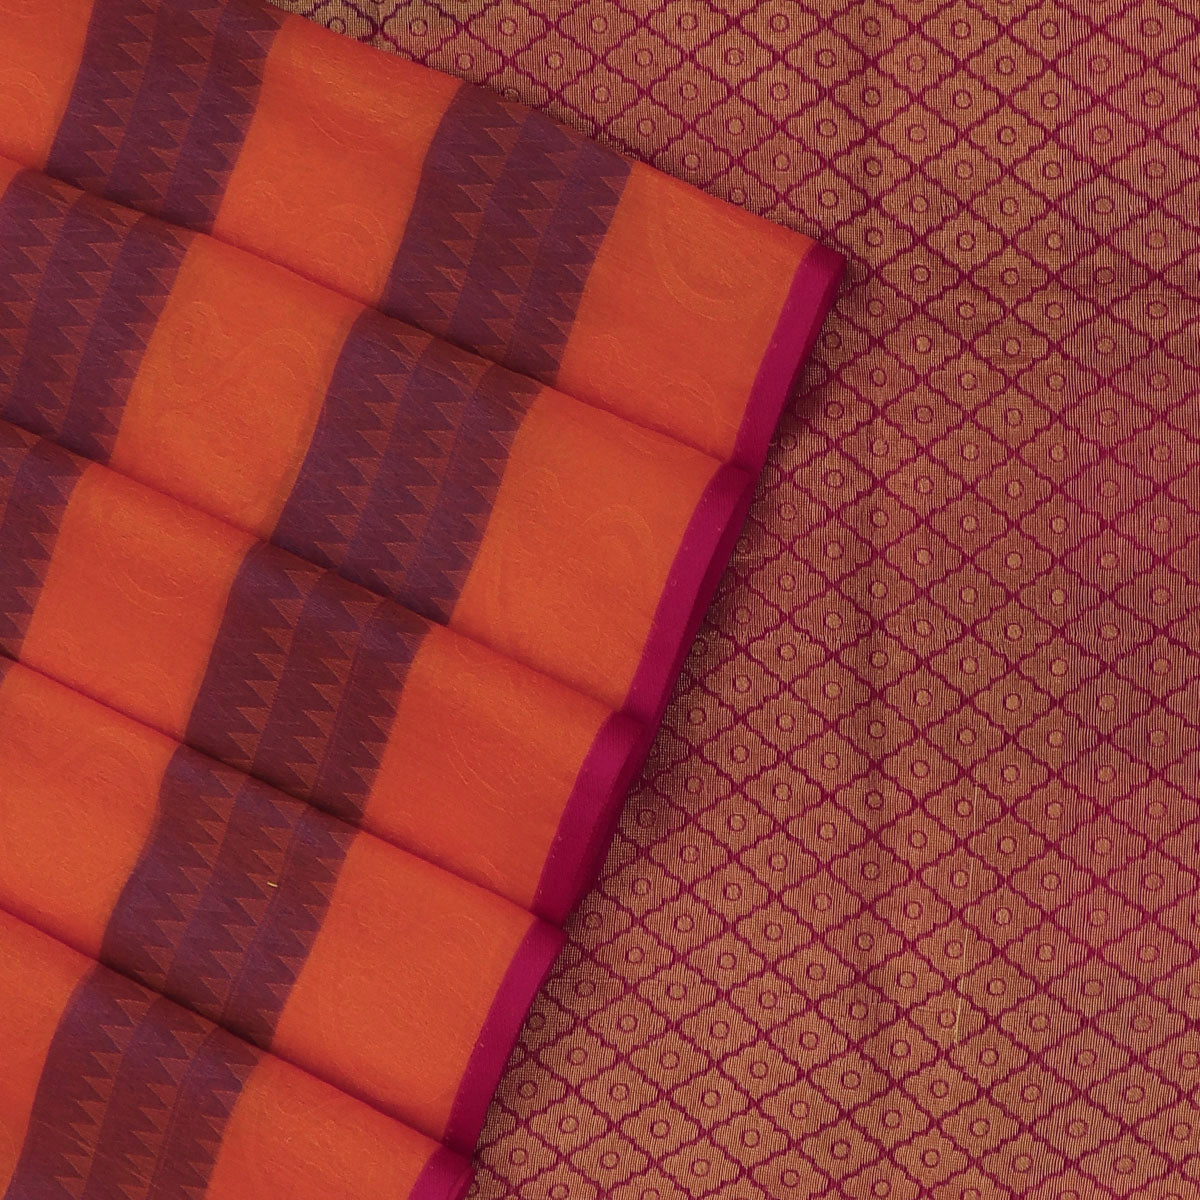 Kora silk saree Orange with Blue and Pink with Simple Border